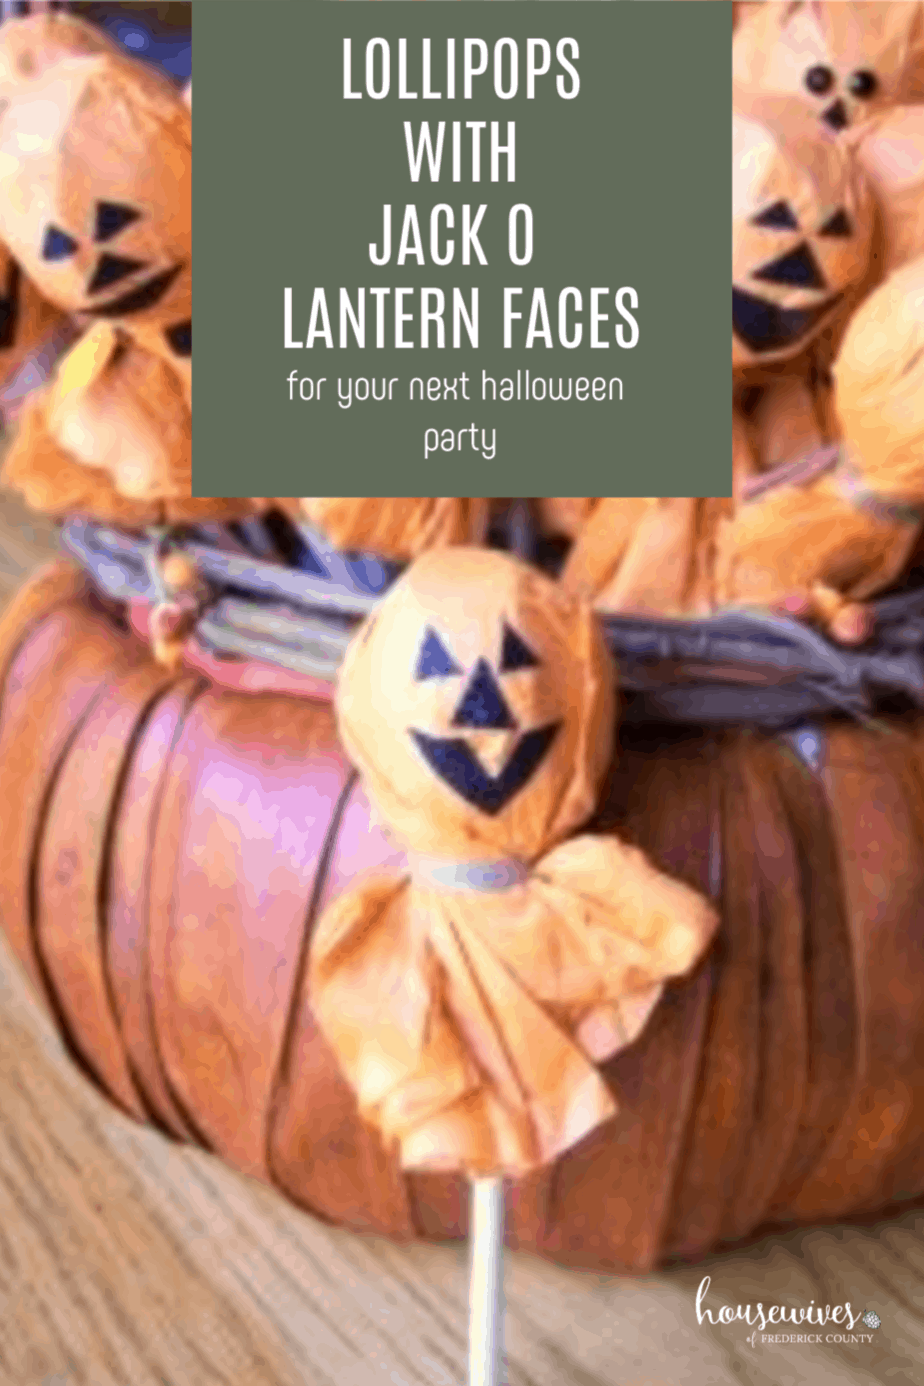 Lollipops with Jack O Lantern Faces for Your Next Halloween Party